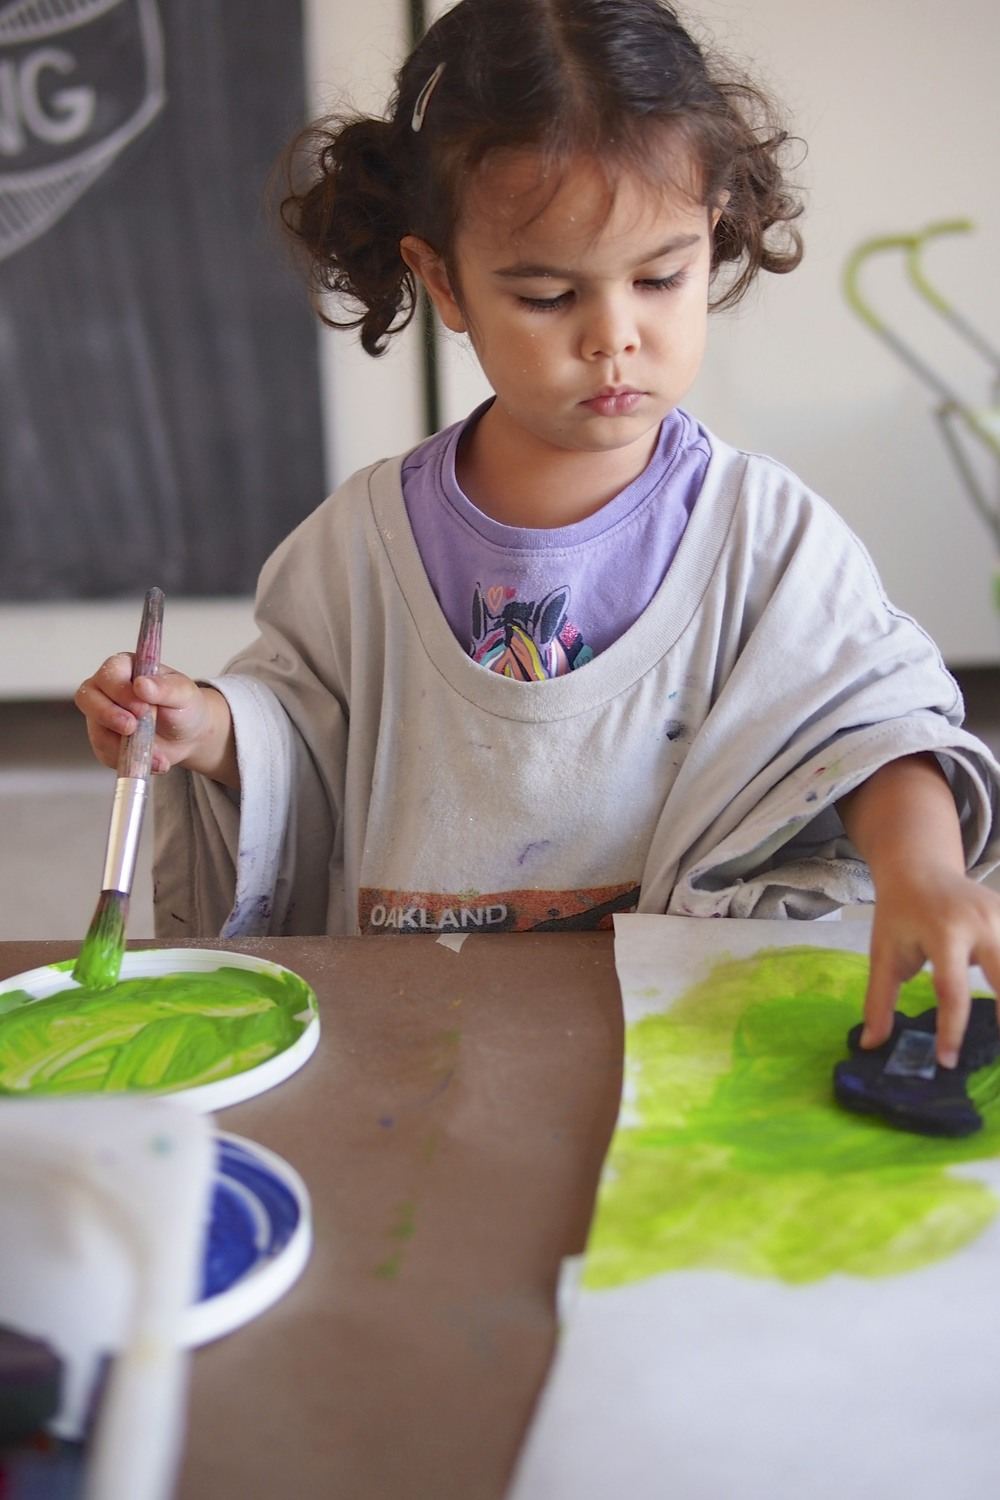 Stamping in paint.